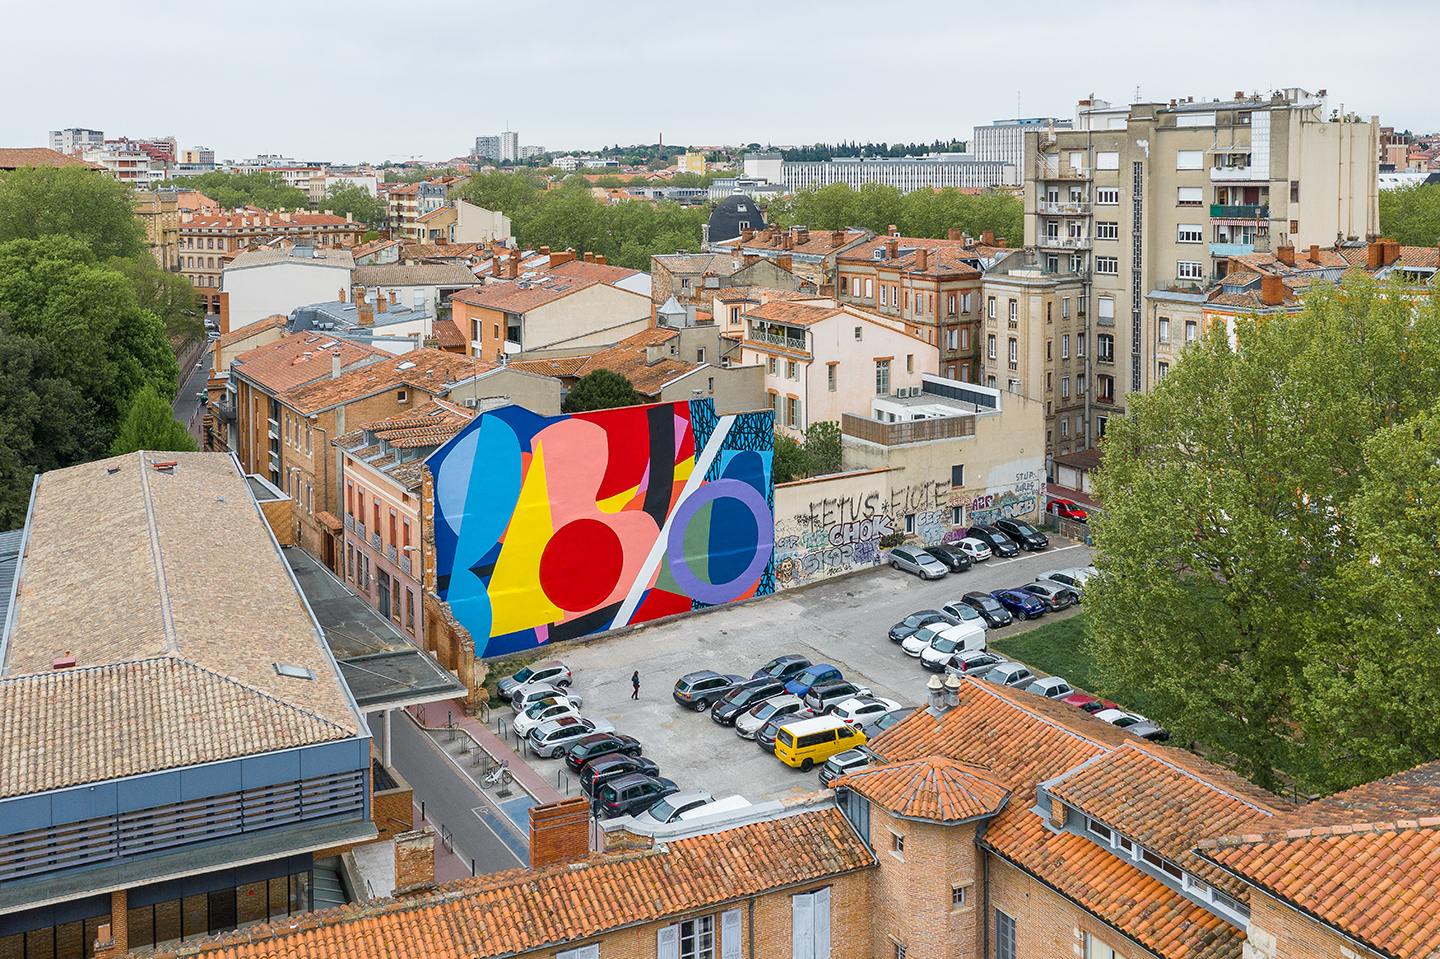 Overlapping and Intersecting Forms with Tangent Lines  , 2019  Commissioned by the City of Toulouse, France with the City of Atlanta for the Rose Beton Biennale  Acrylic on wall  46 x 82 ft.